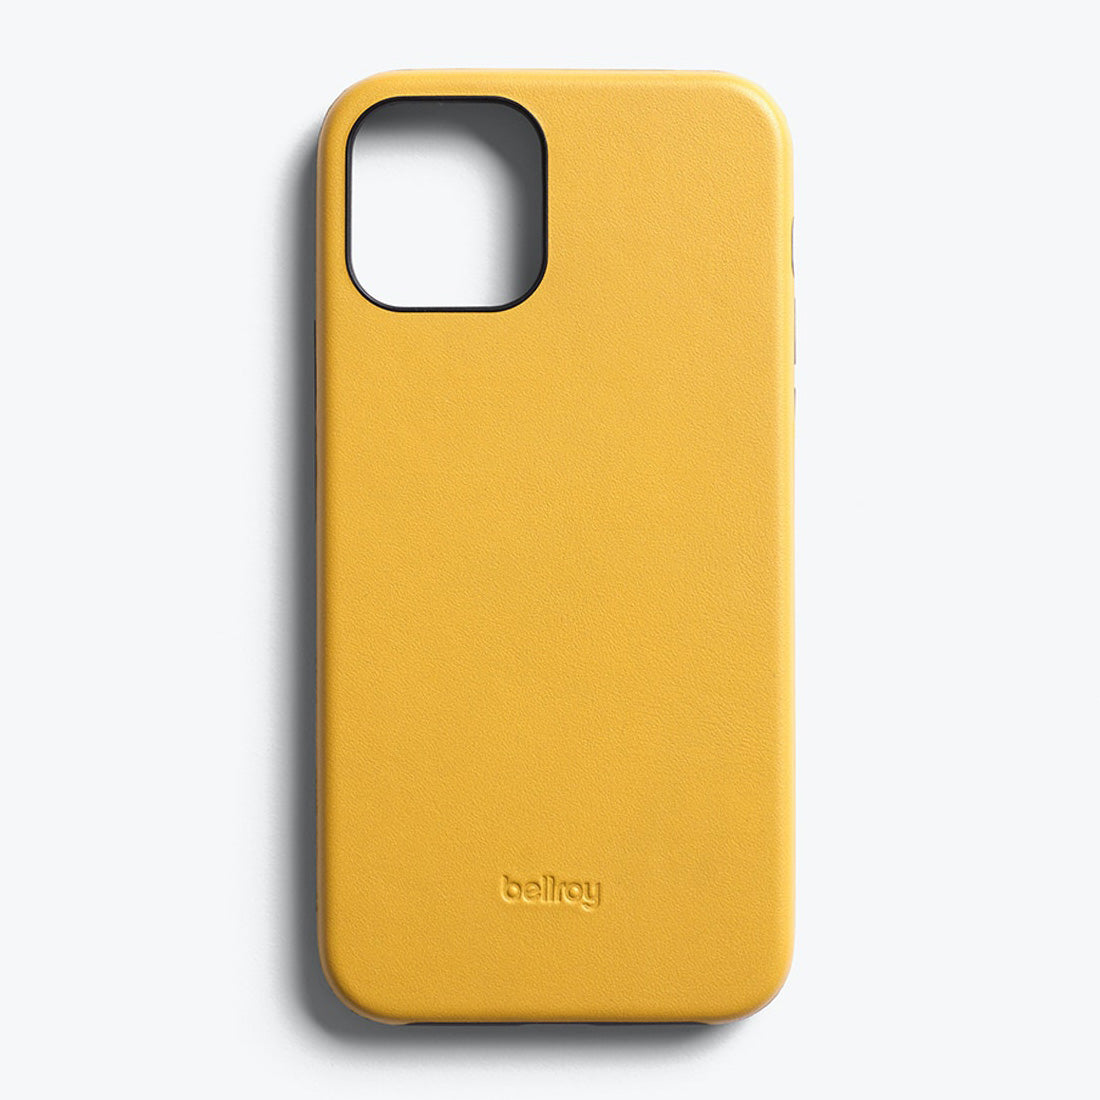 Bellroy Slim Genuine Leather Case For iPhone iPhone 12 Pro Max - LEMON